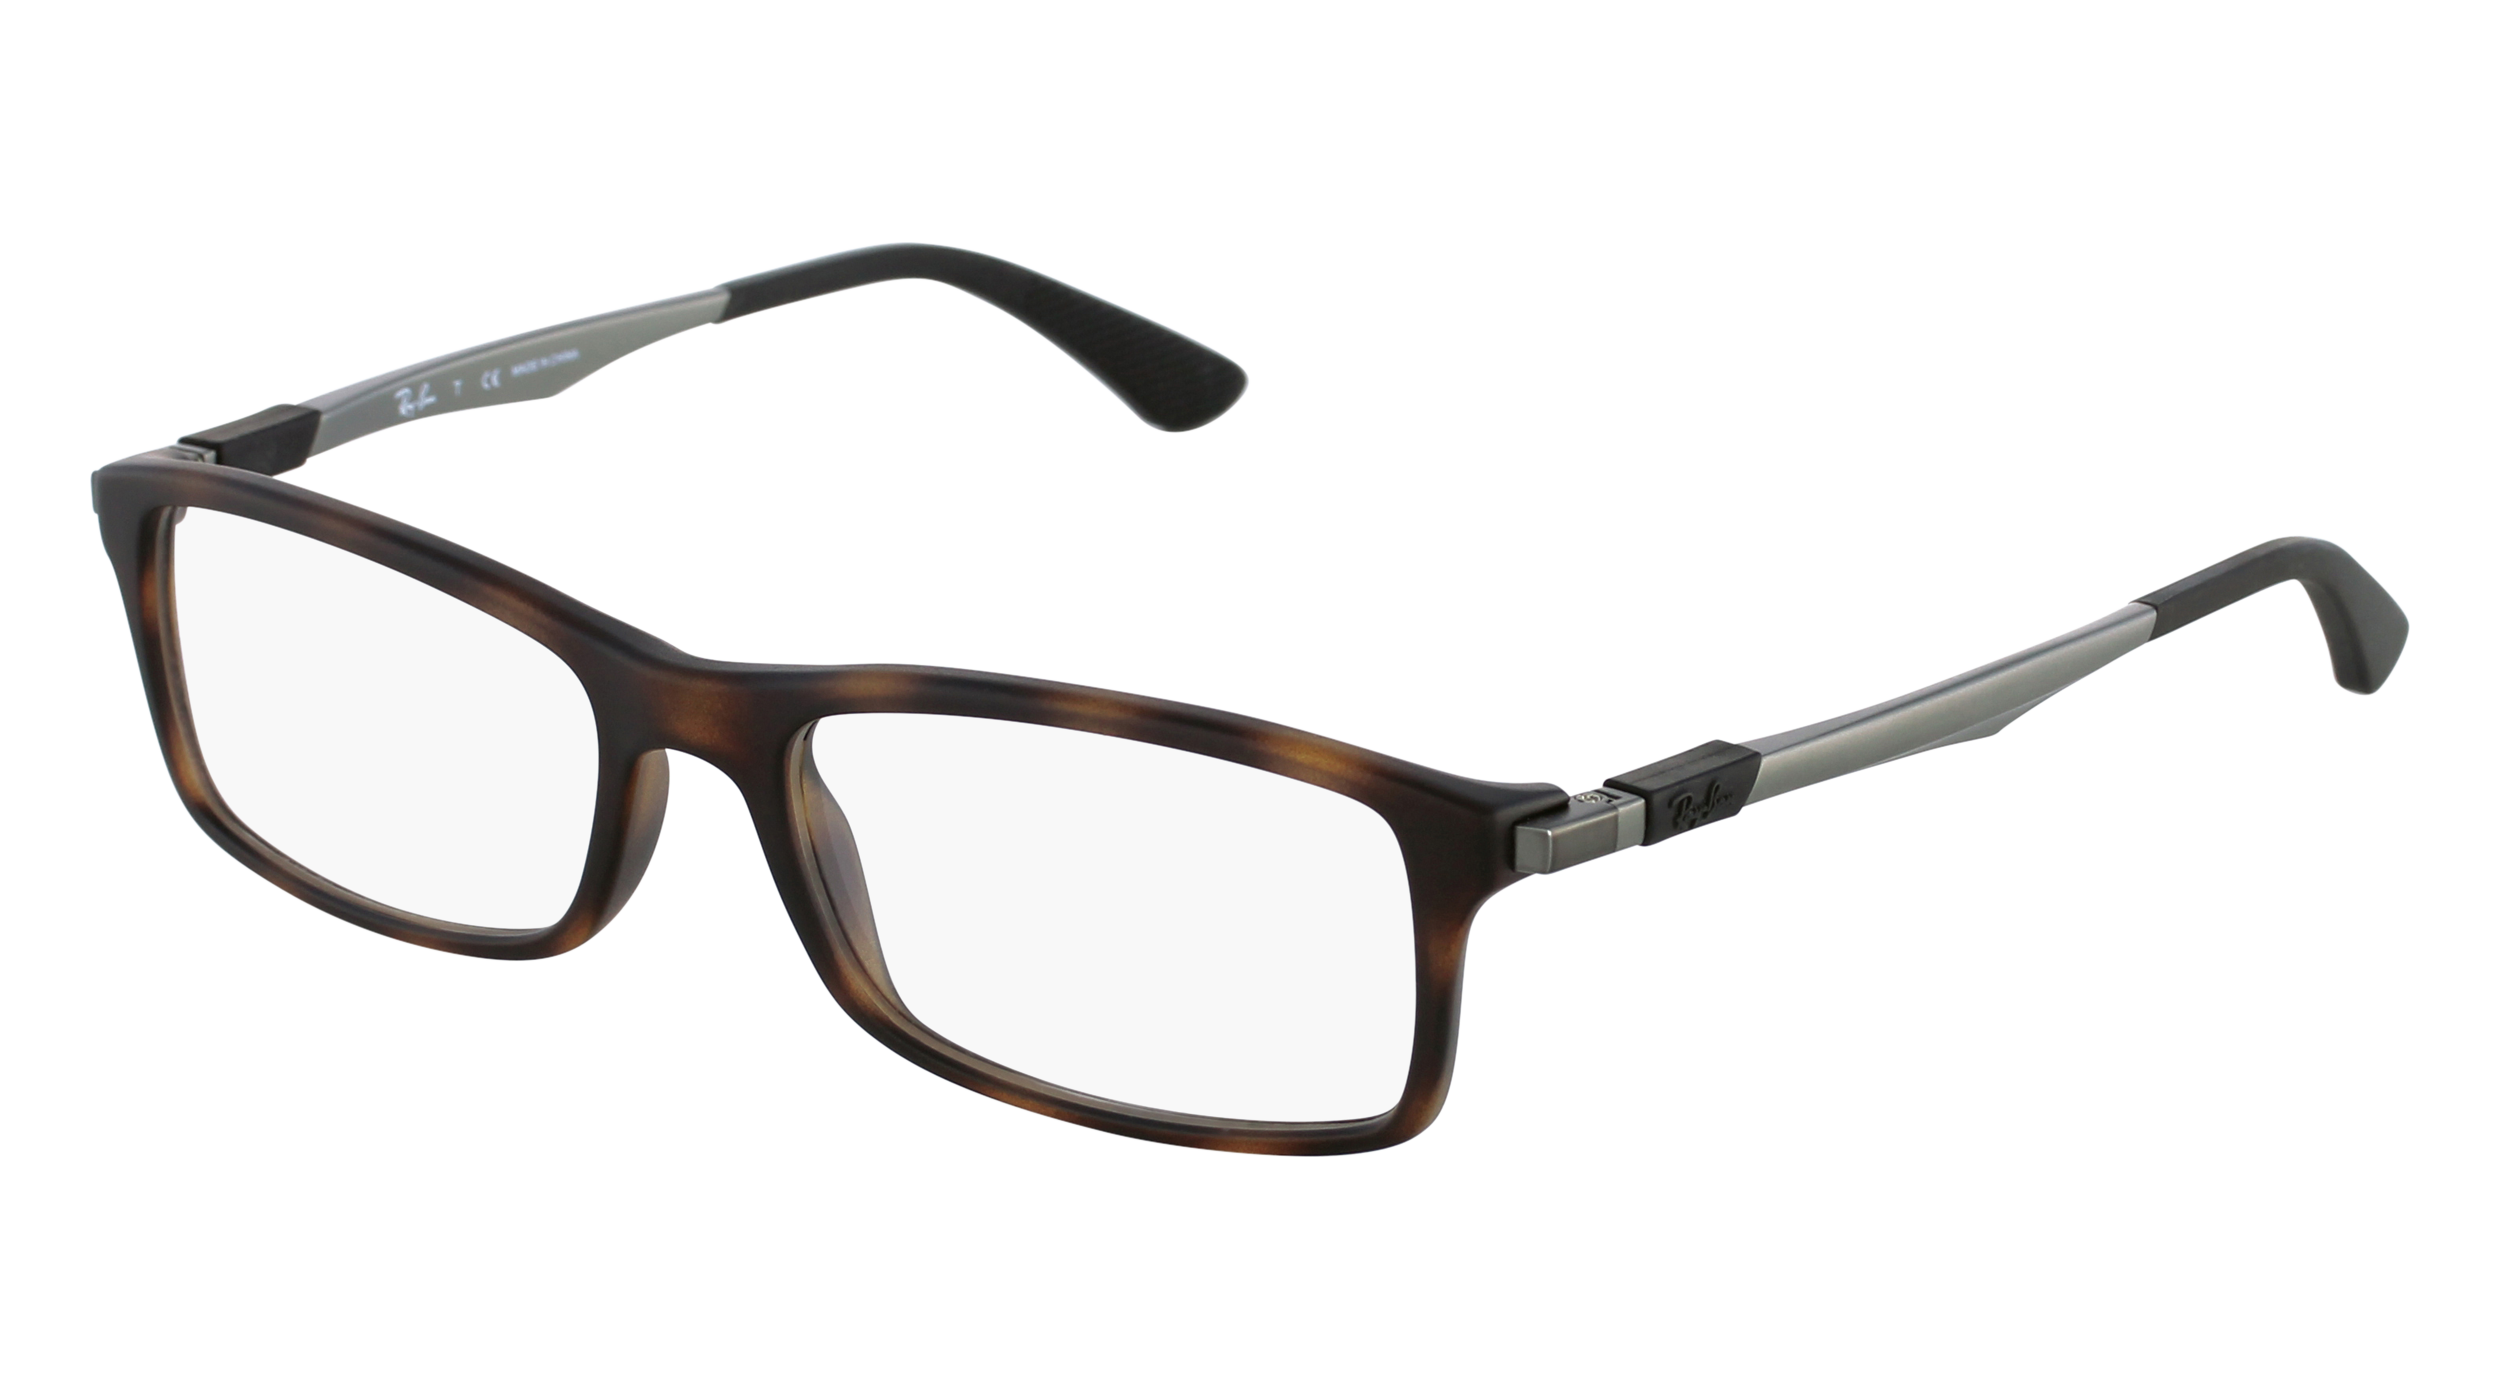 Ray Ban Nylon RB7017 - JCPenney Optical